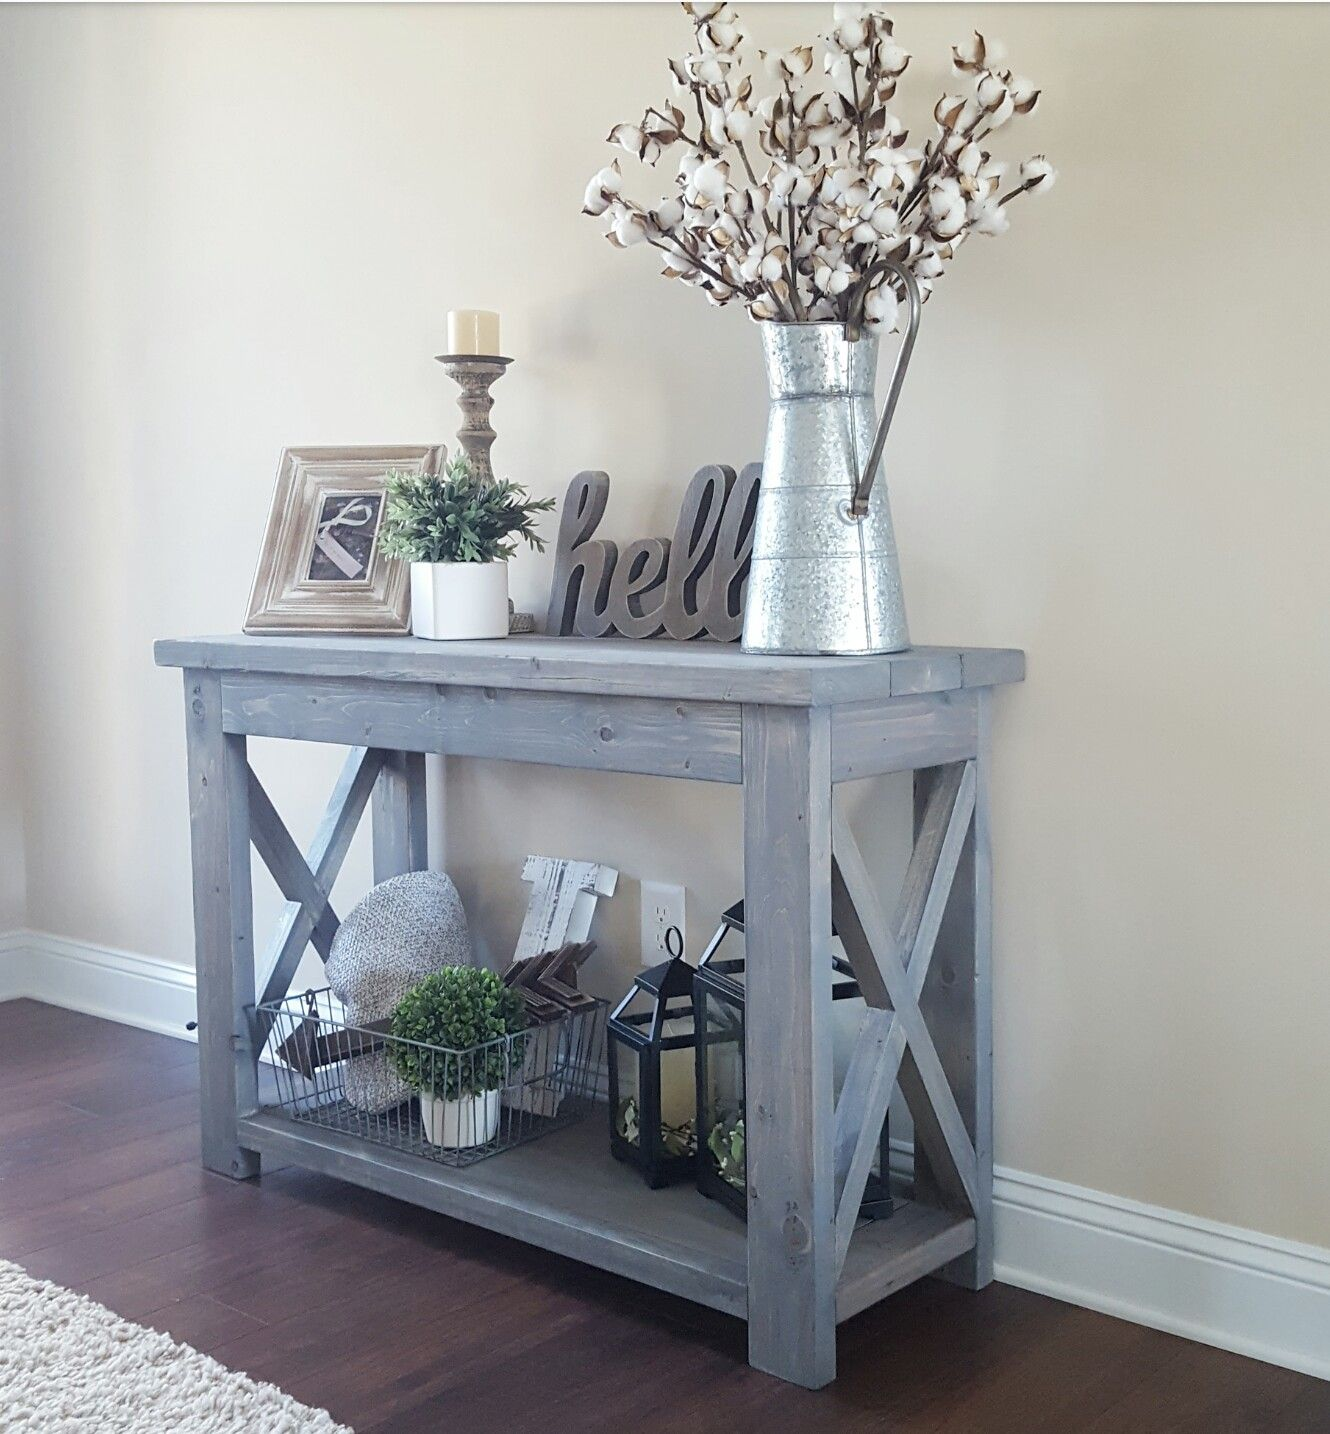 modified ana white rustic console table and used minwax classic accent gray stain cabinet legs pottery barn floor lamp trendy lamps black tables for living room drop leaf